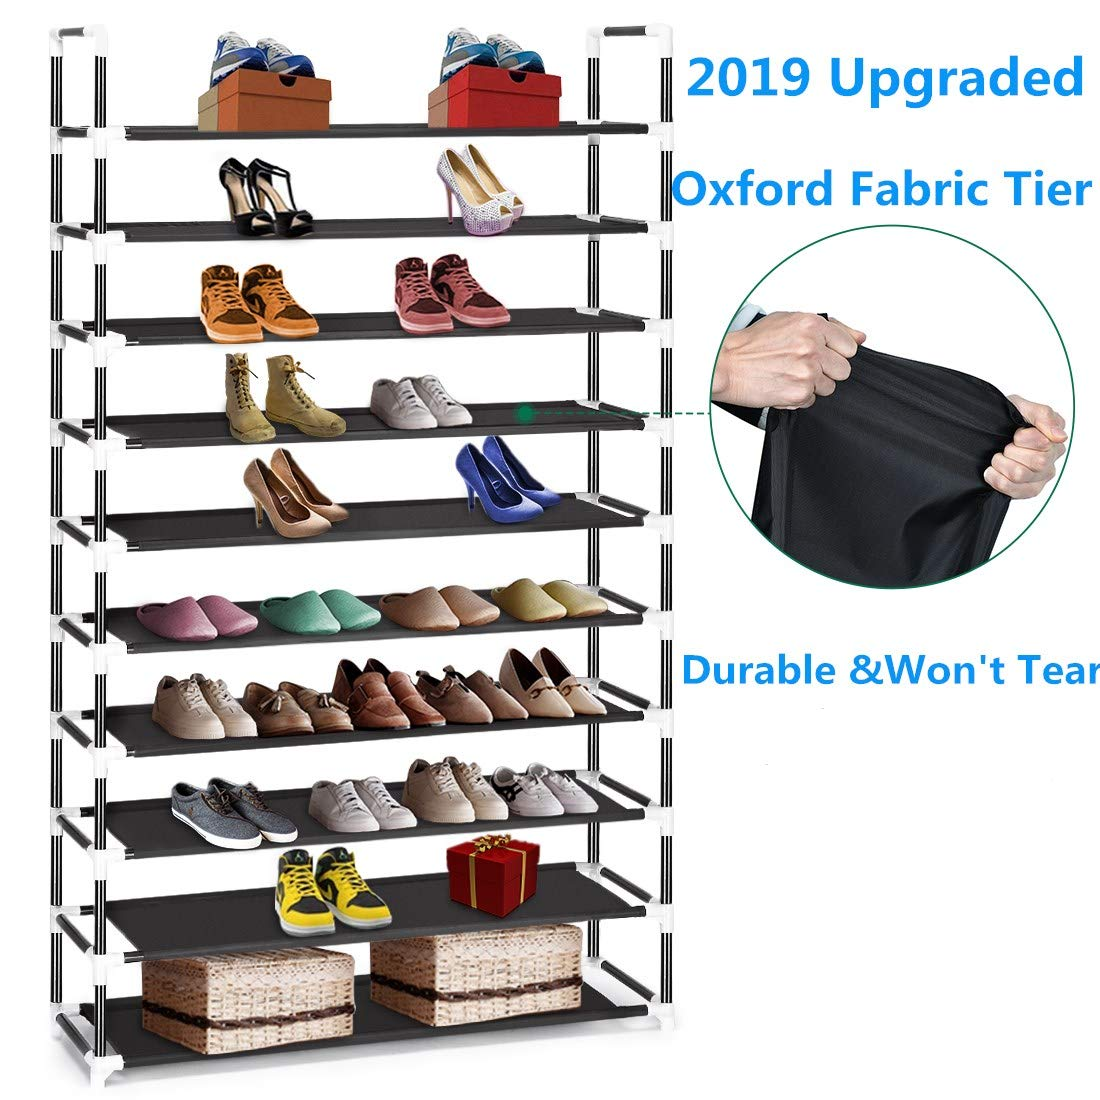 Oxford Fabric 10 Tiers Shoe Rack,Improved Heavy Duty 50 Pairs Shoe Organizer Storage Shelf, Standing Shoe Rack Supports 15lbs per Tier for Boots, Heels, Shoes Organization